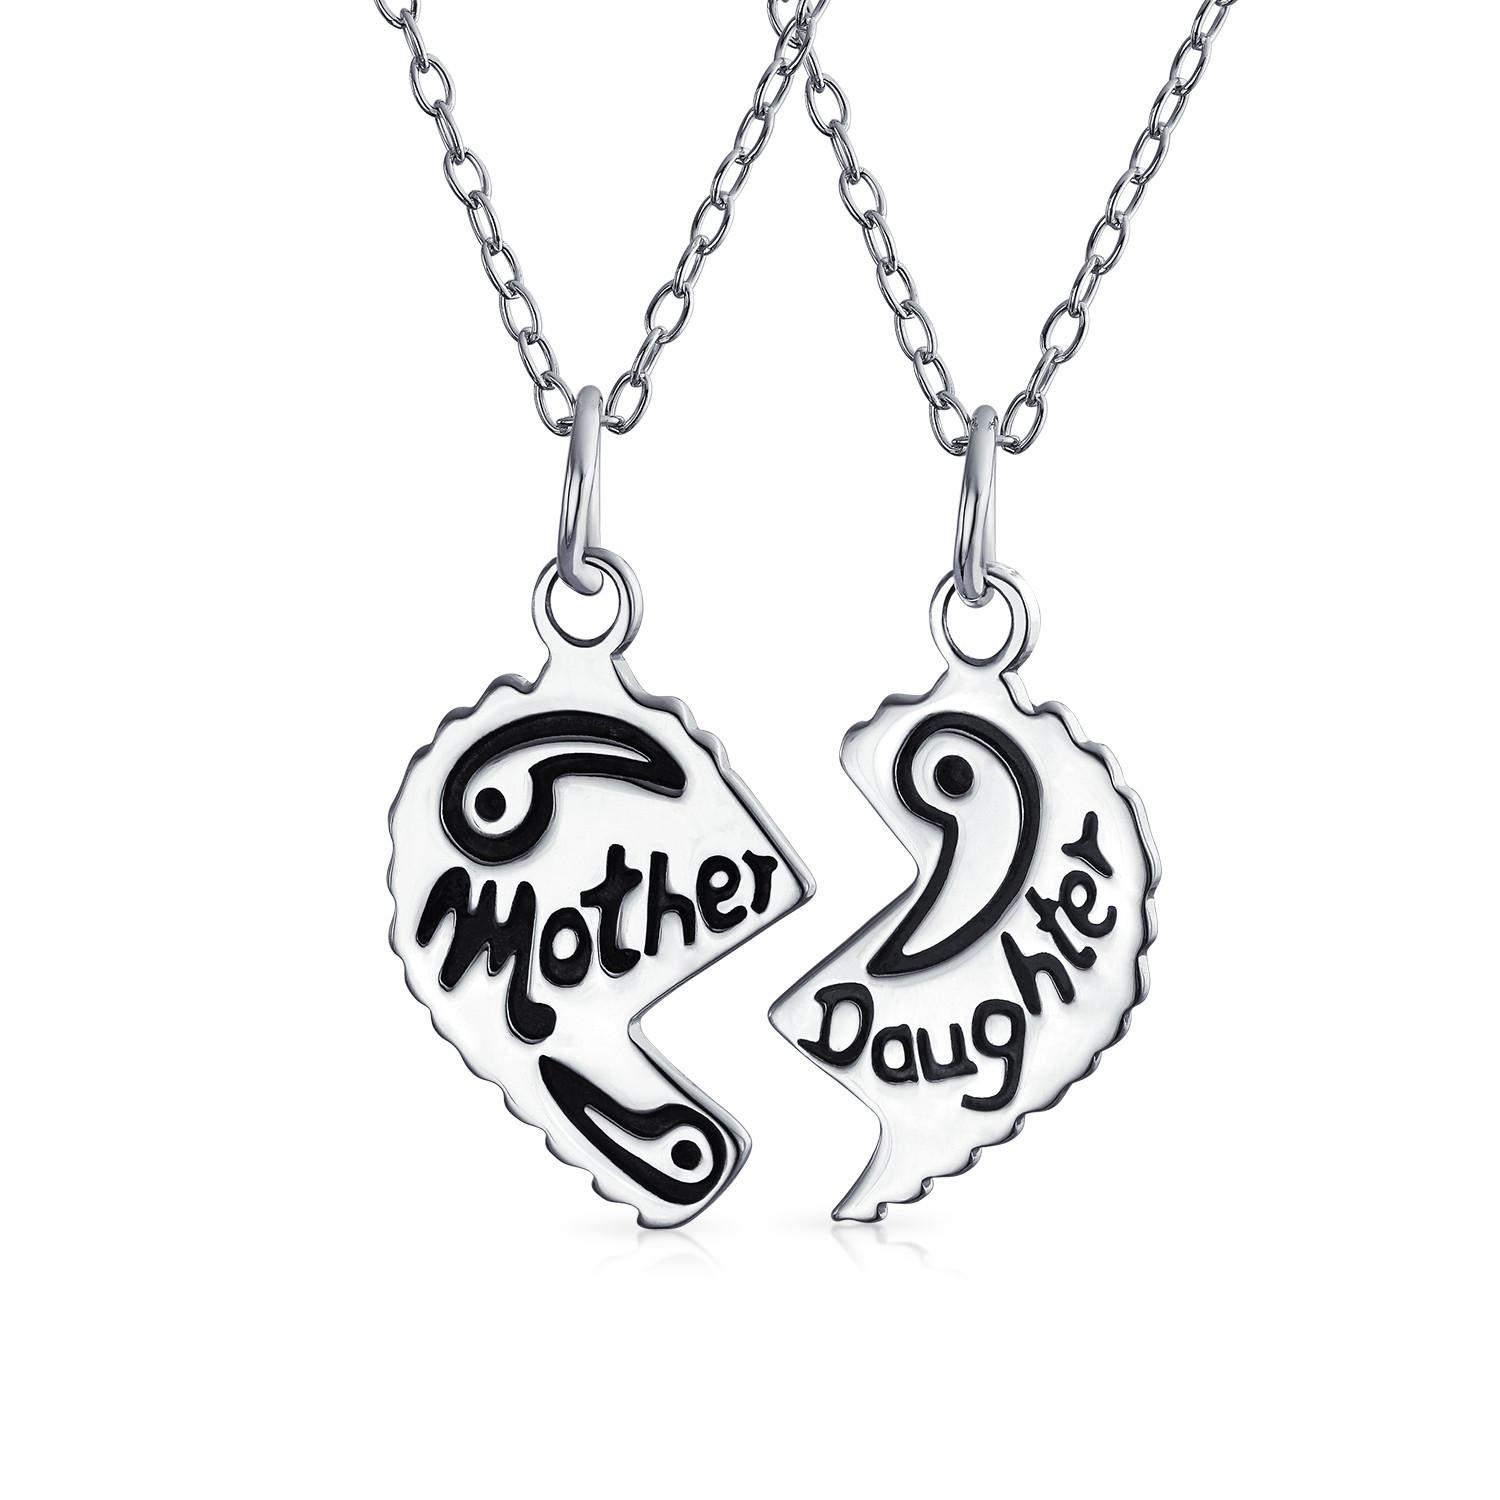 1500x1500 925 Sterling Silver Mother Daughter Split Heart Pendant Set 16in